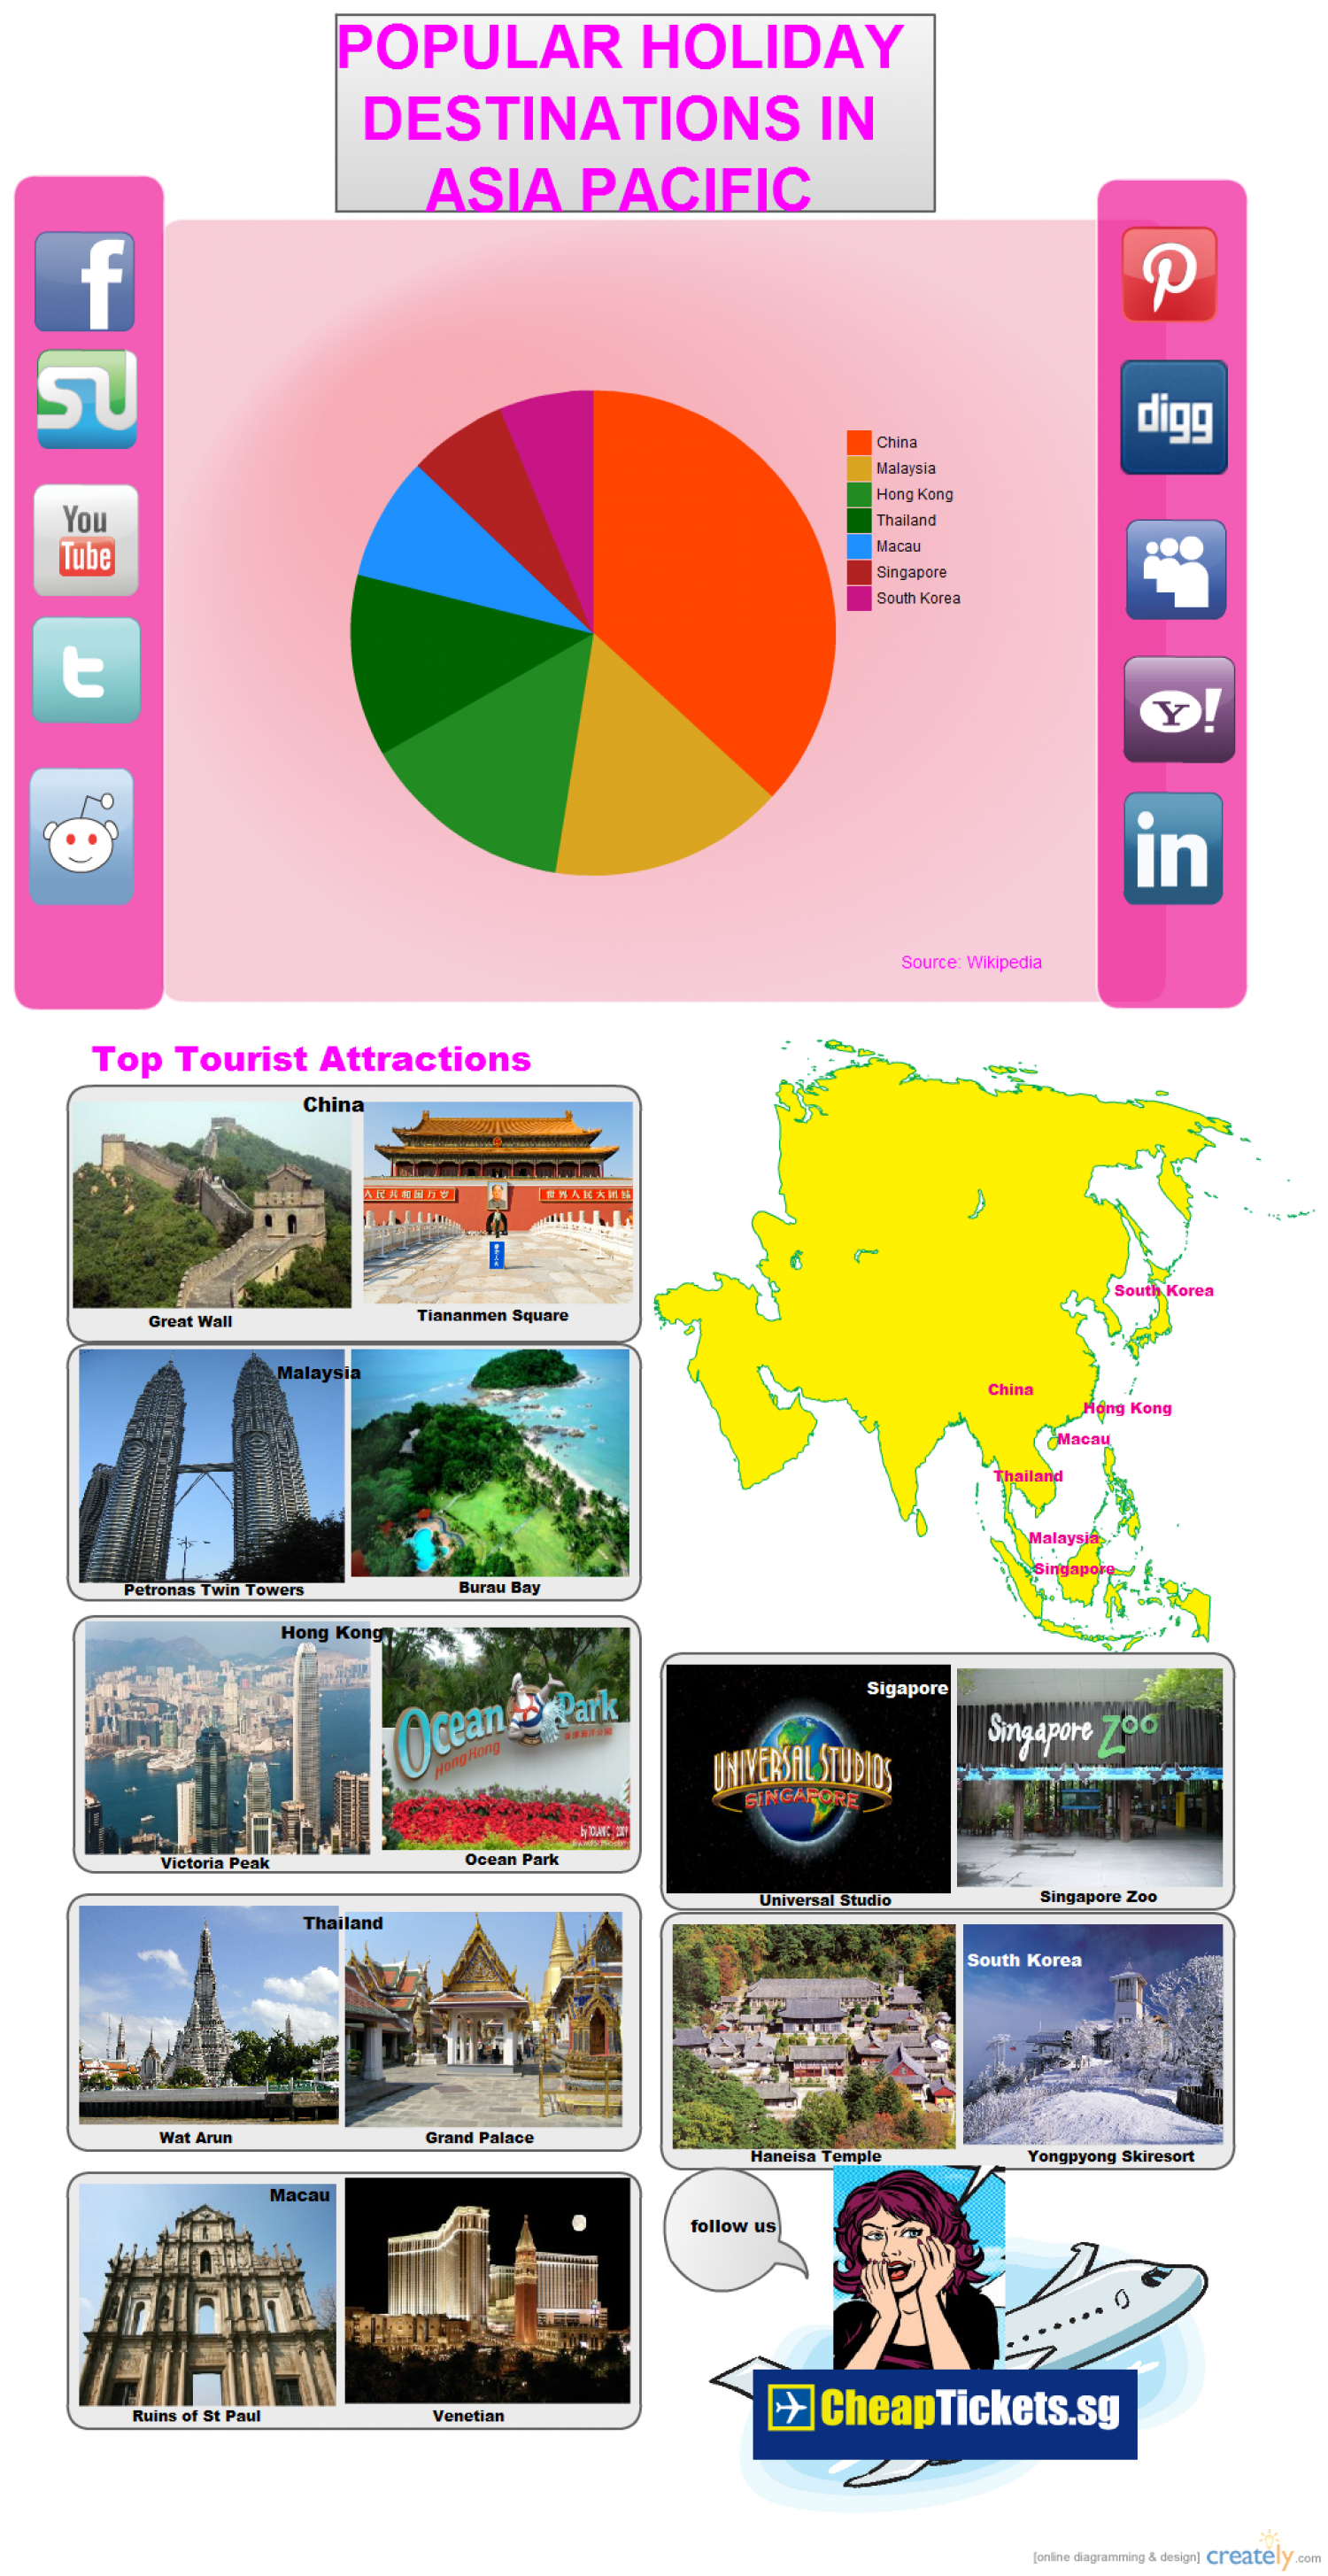 Popular Holiday Destination in Asia Pacific Infographic